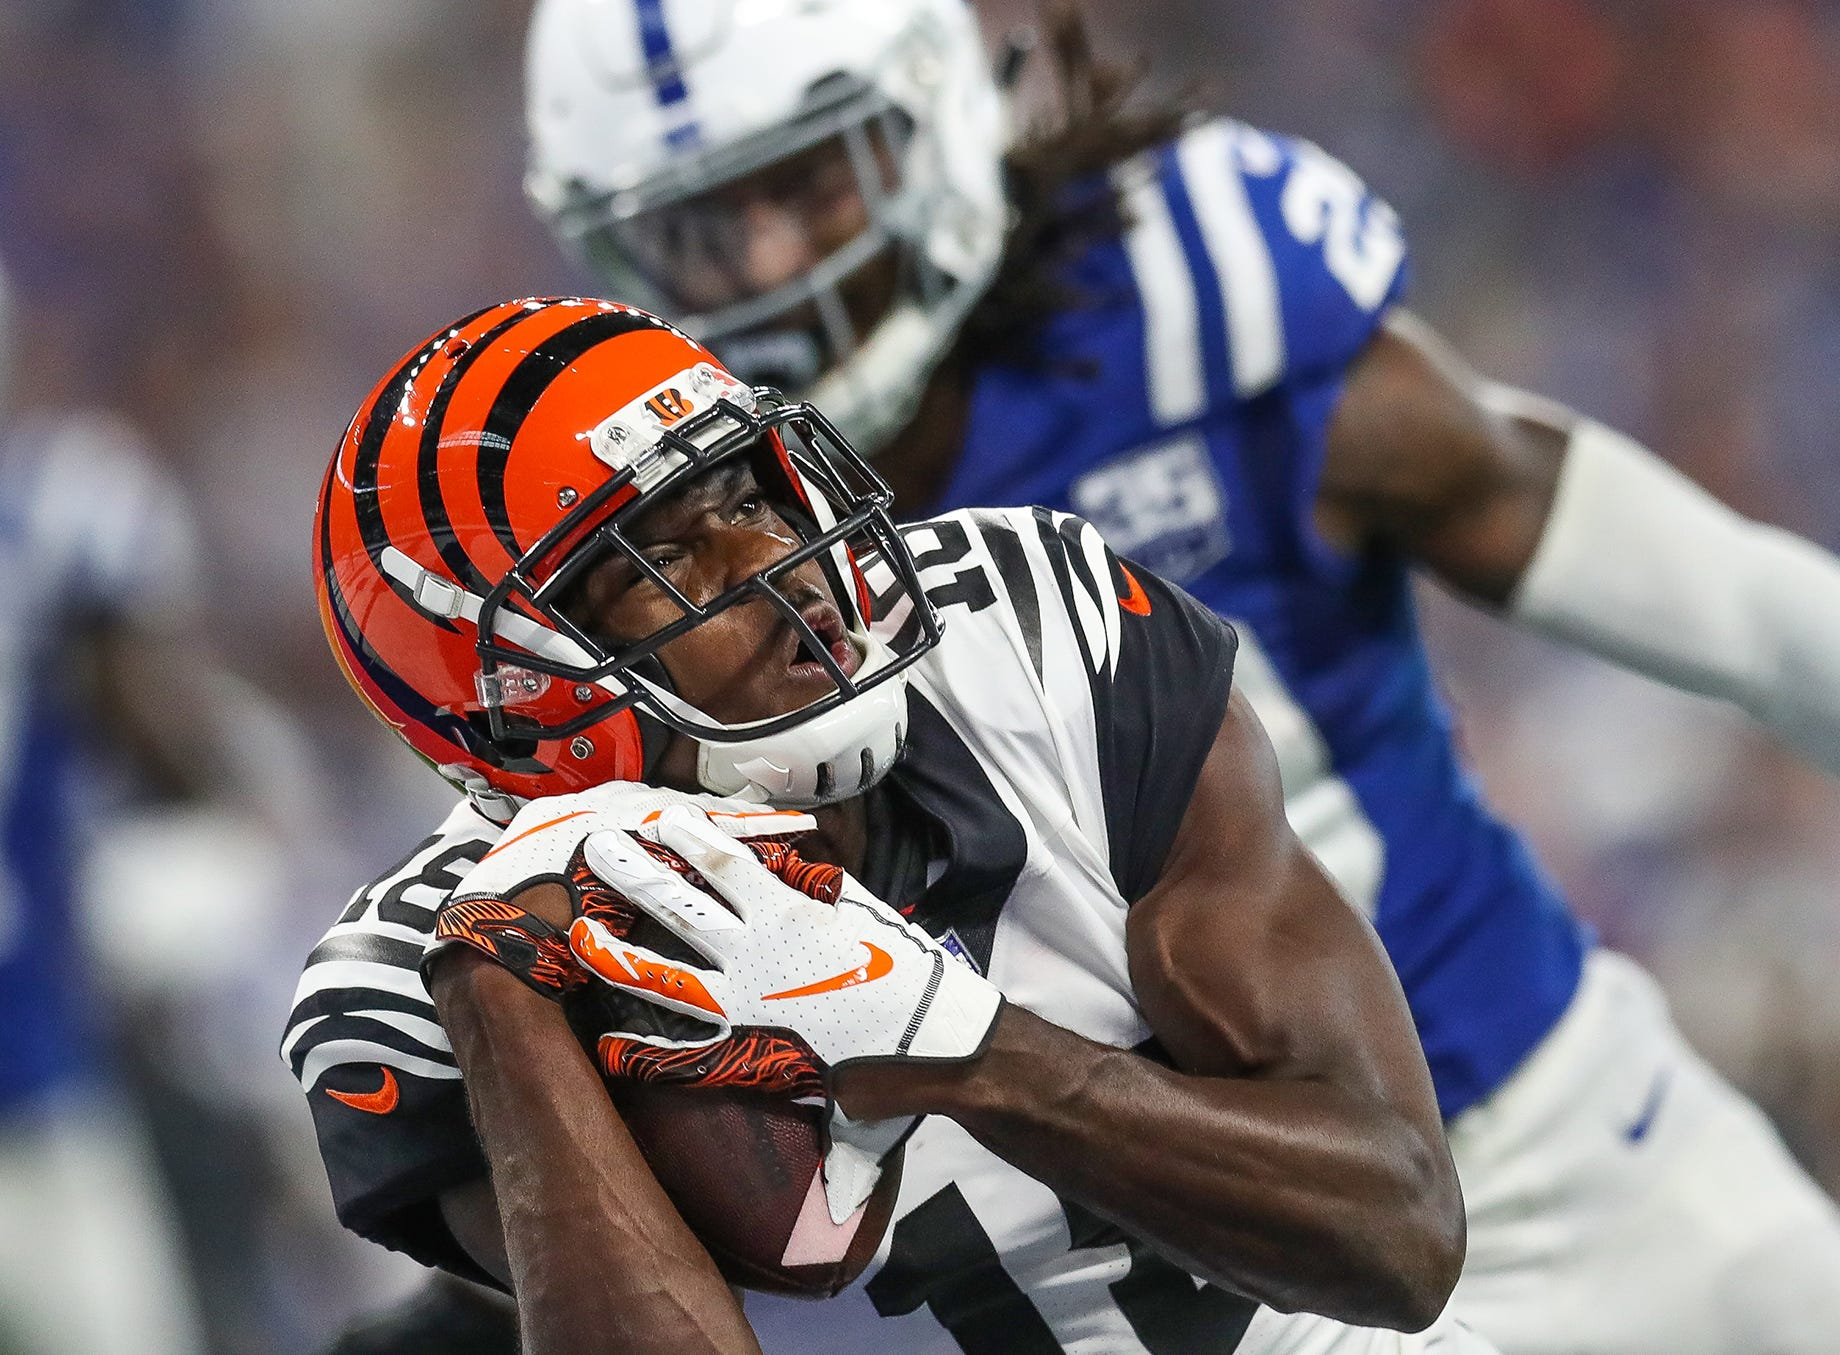 Cincinnati Bengals wide receiver A.J. Green (18) pulls in a touchdown pass from quarterback Andy Dalton (14) against the Indianapolis Colts at Lucas Oil Stadium on Sunday, Sept. 9, 2018.